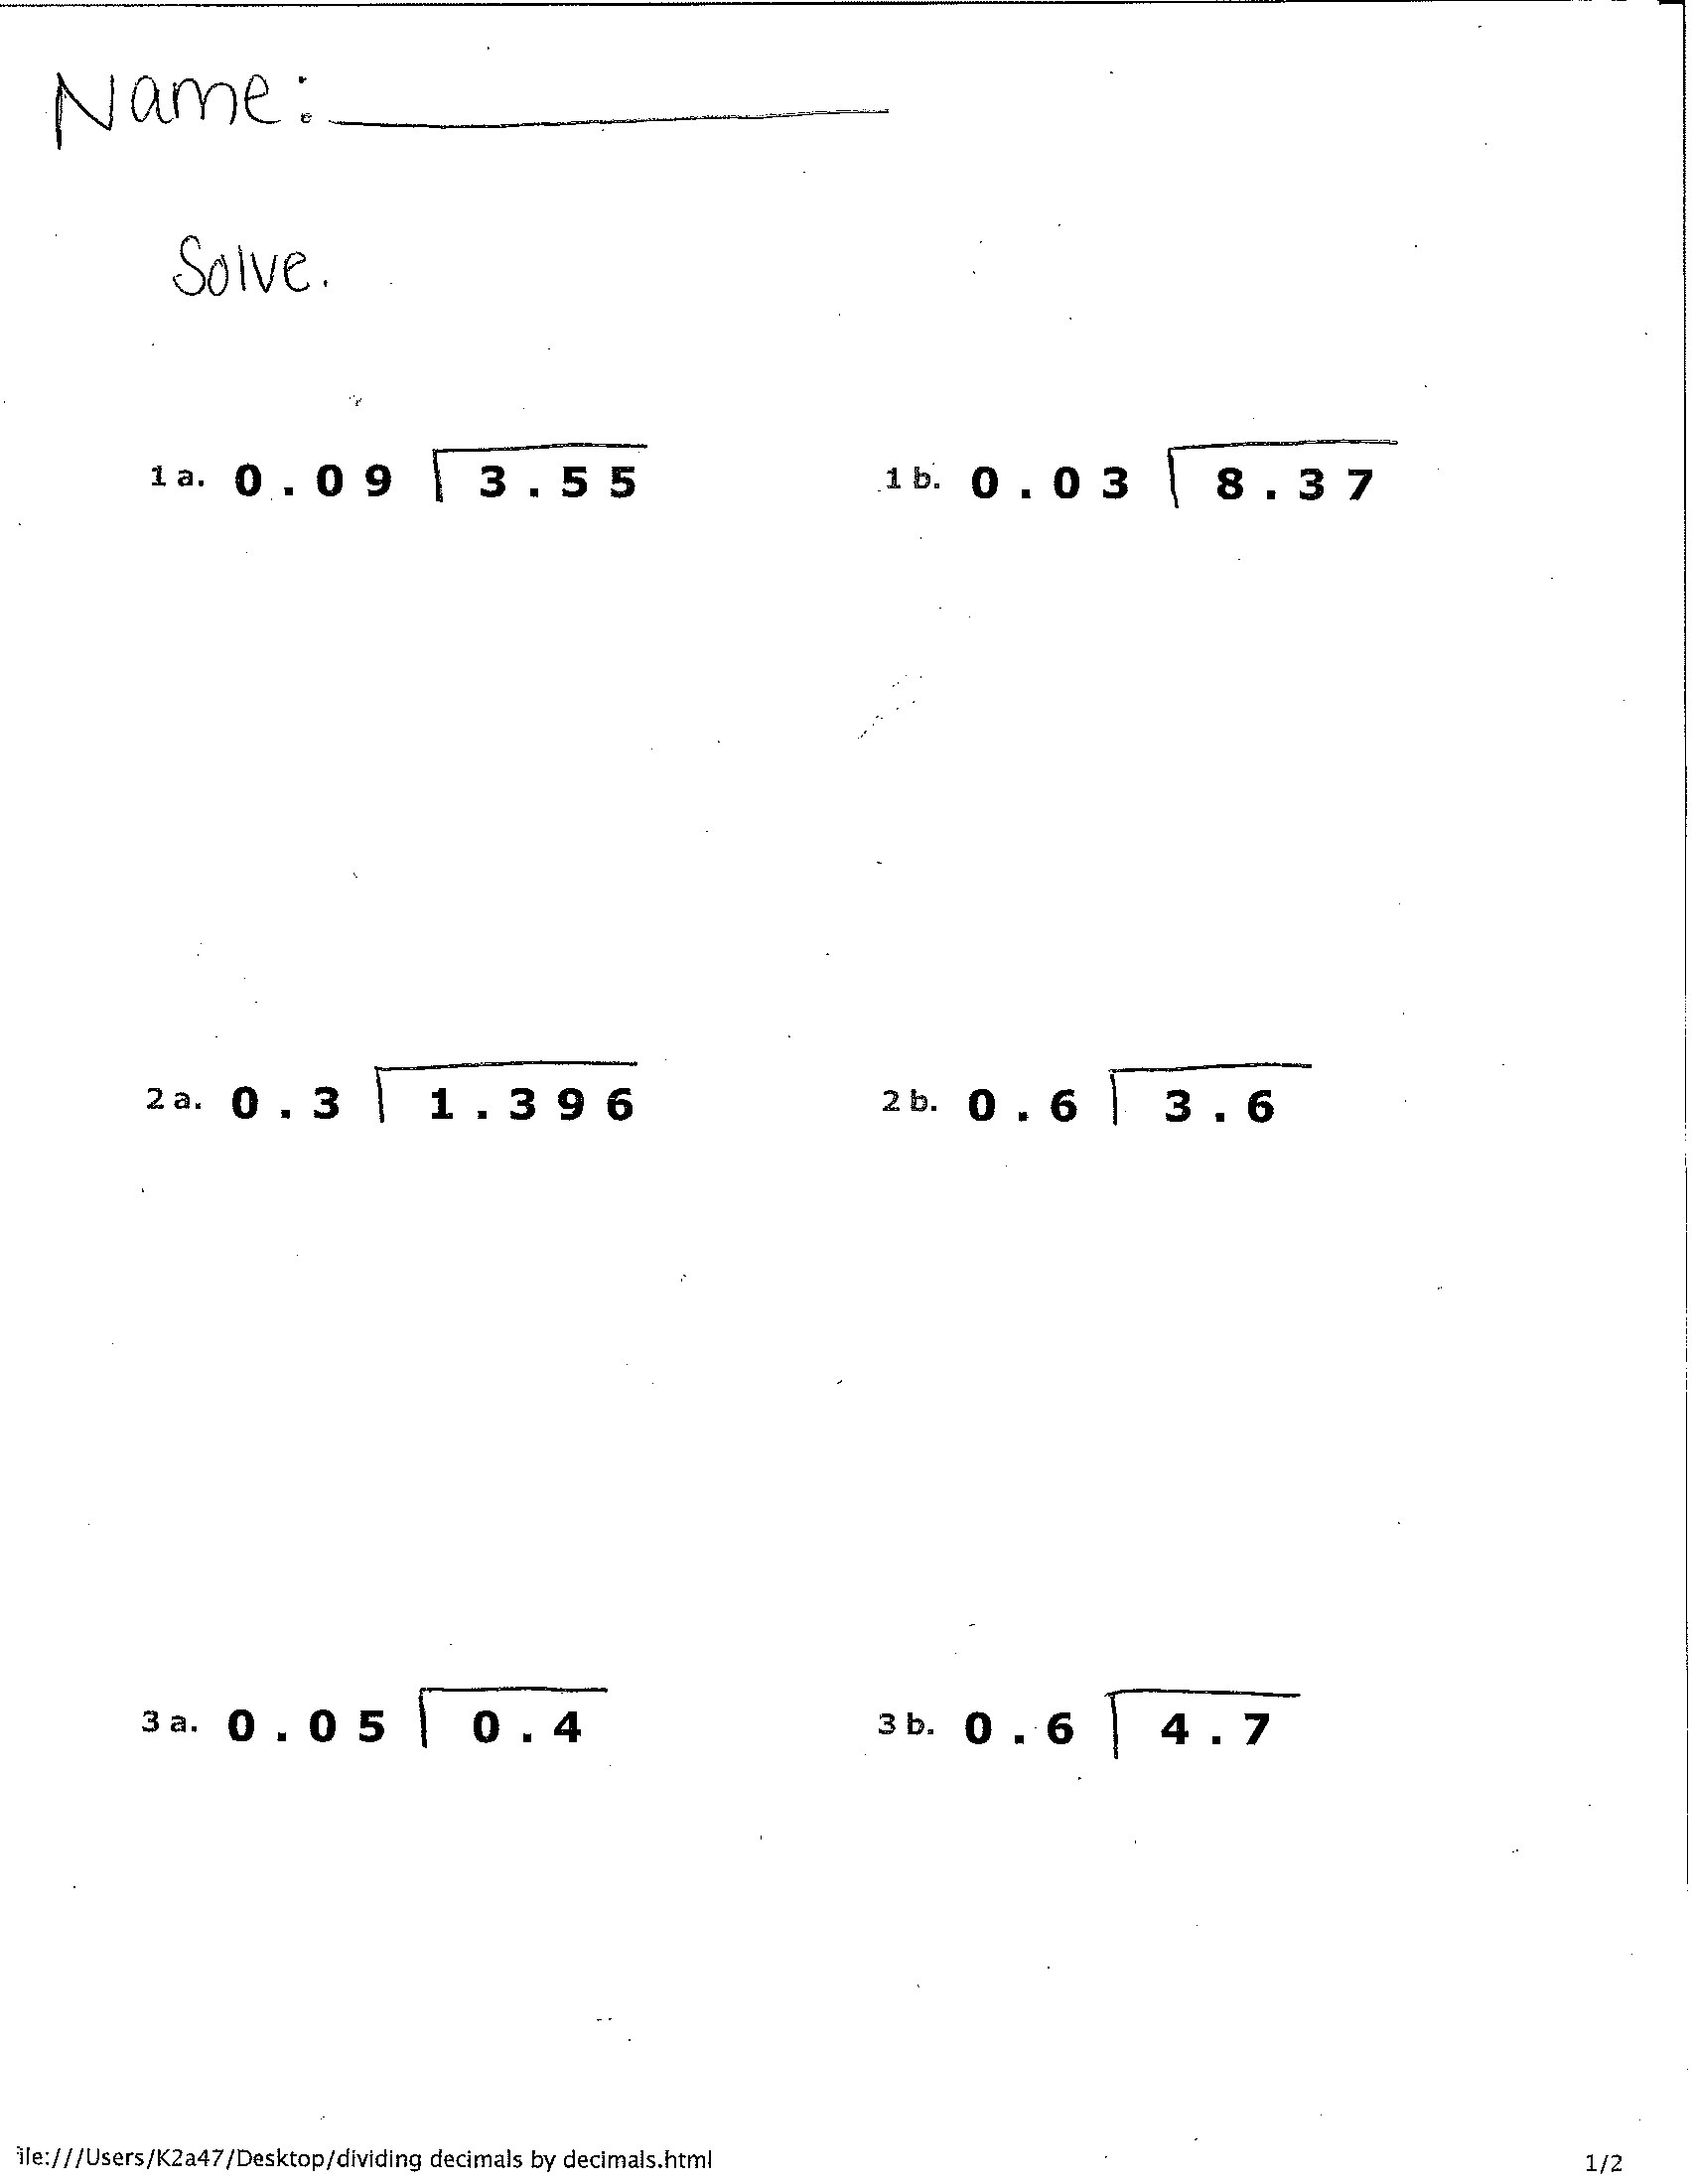 6th Grade Decimals Scalien – Decimals Worksheets 6th Grade